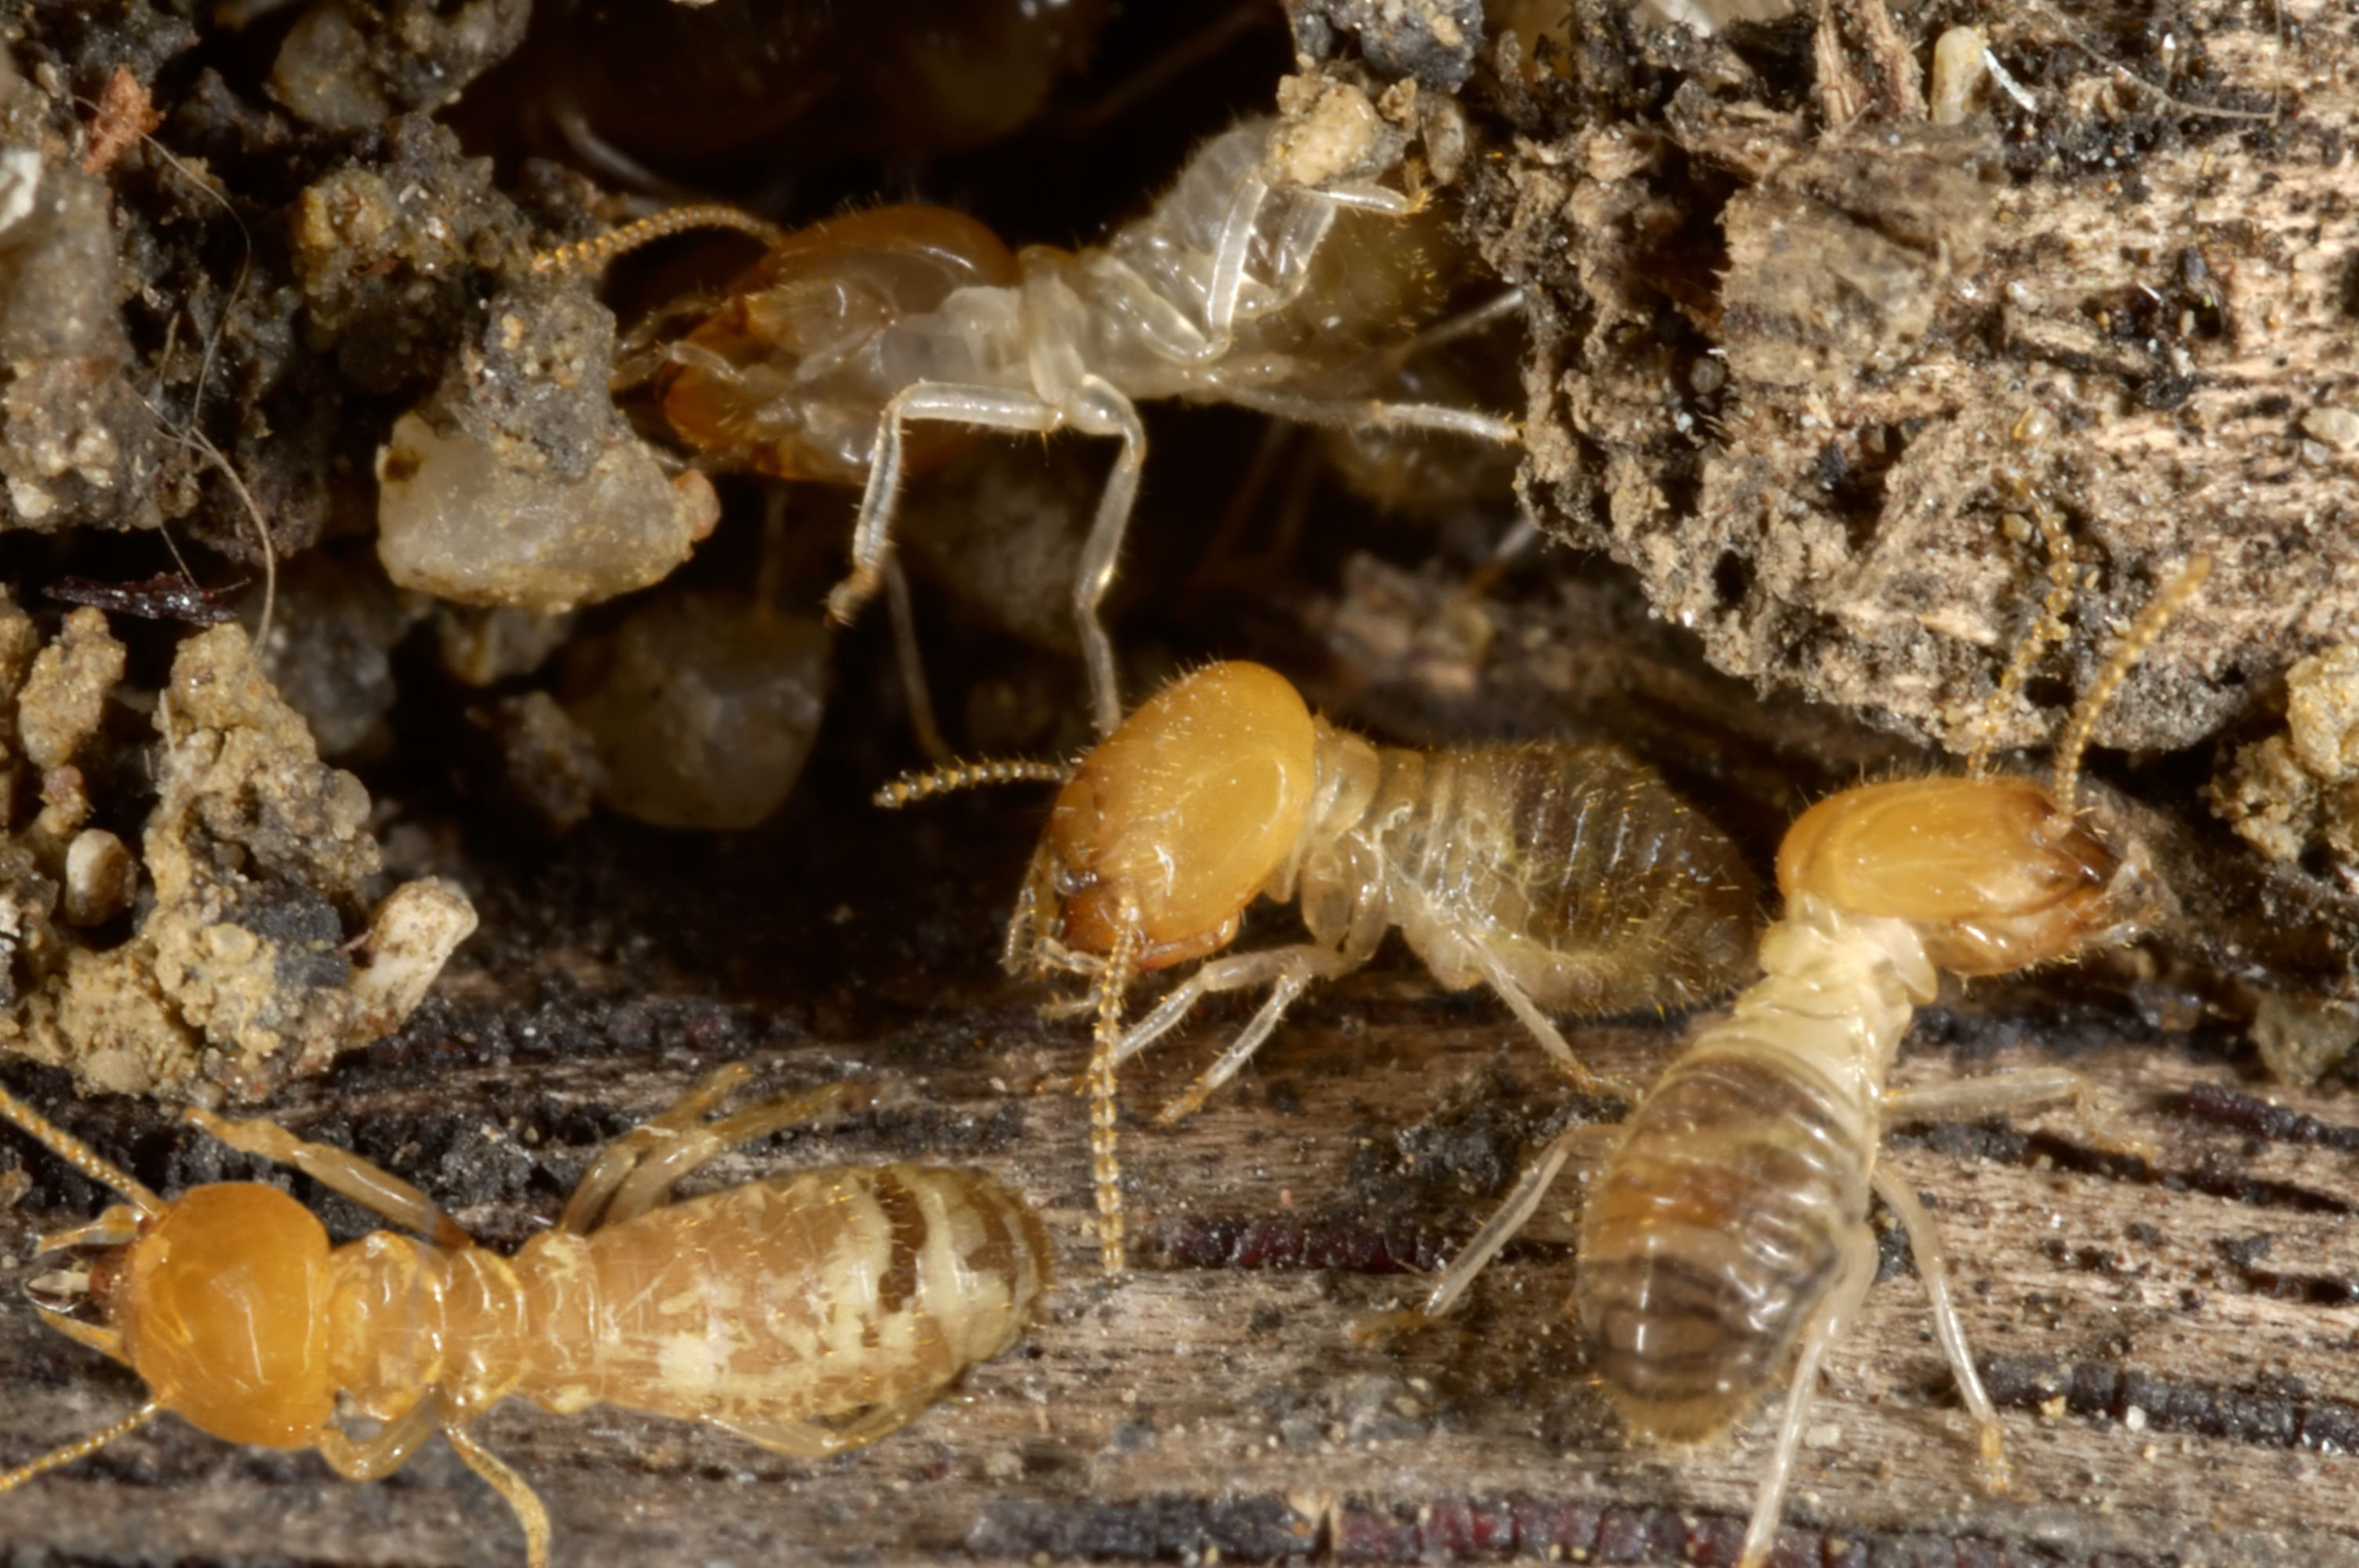 A close-up of ugly termites on the dirt